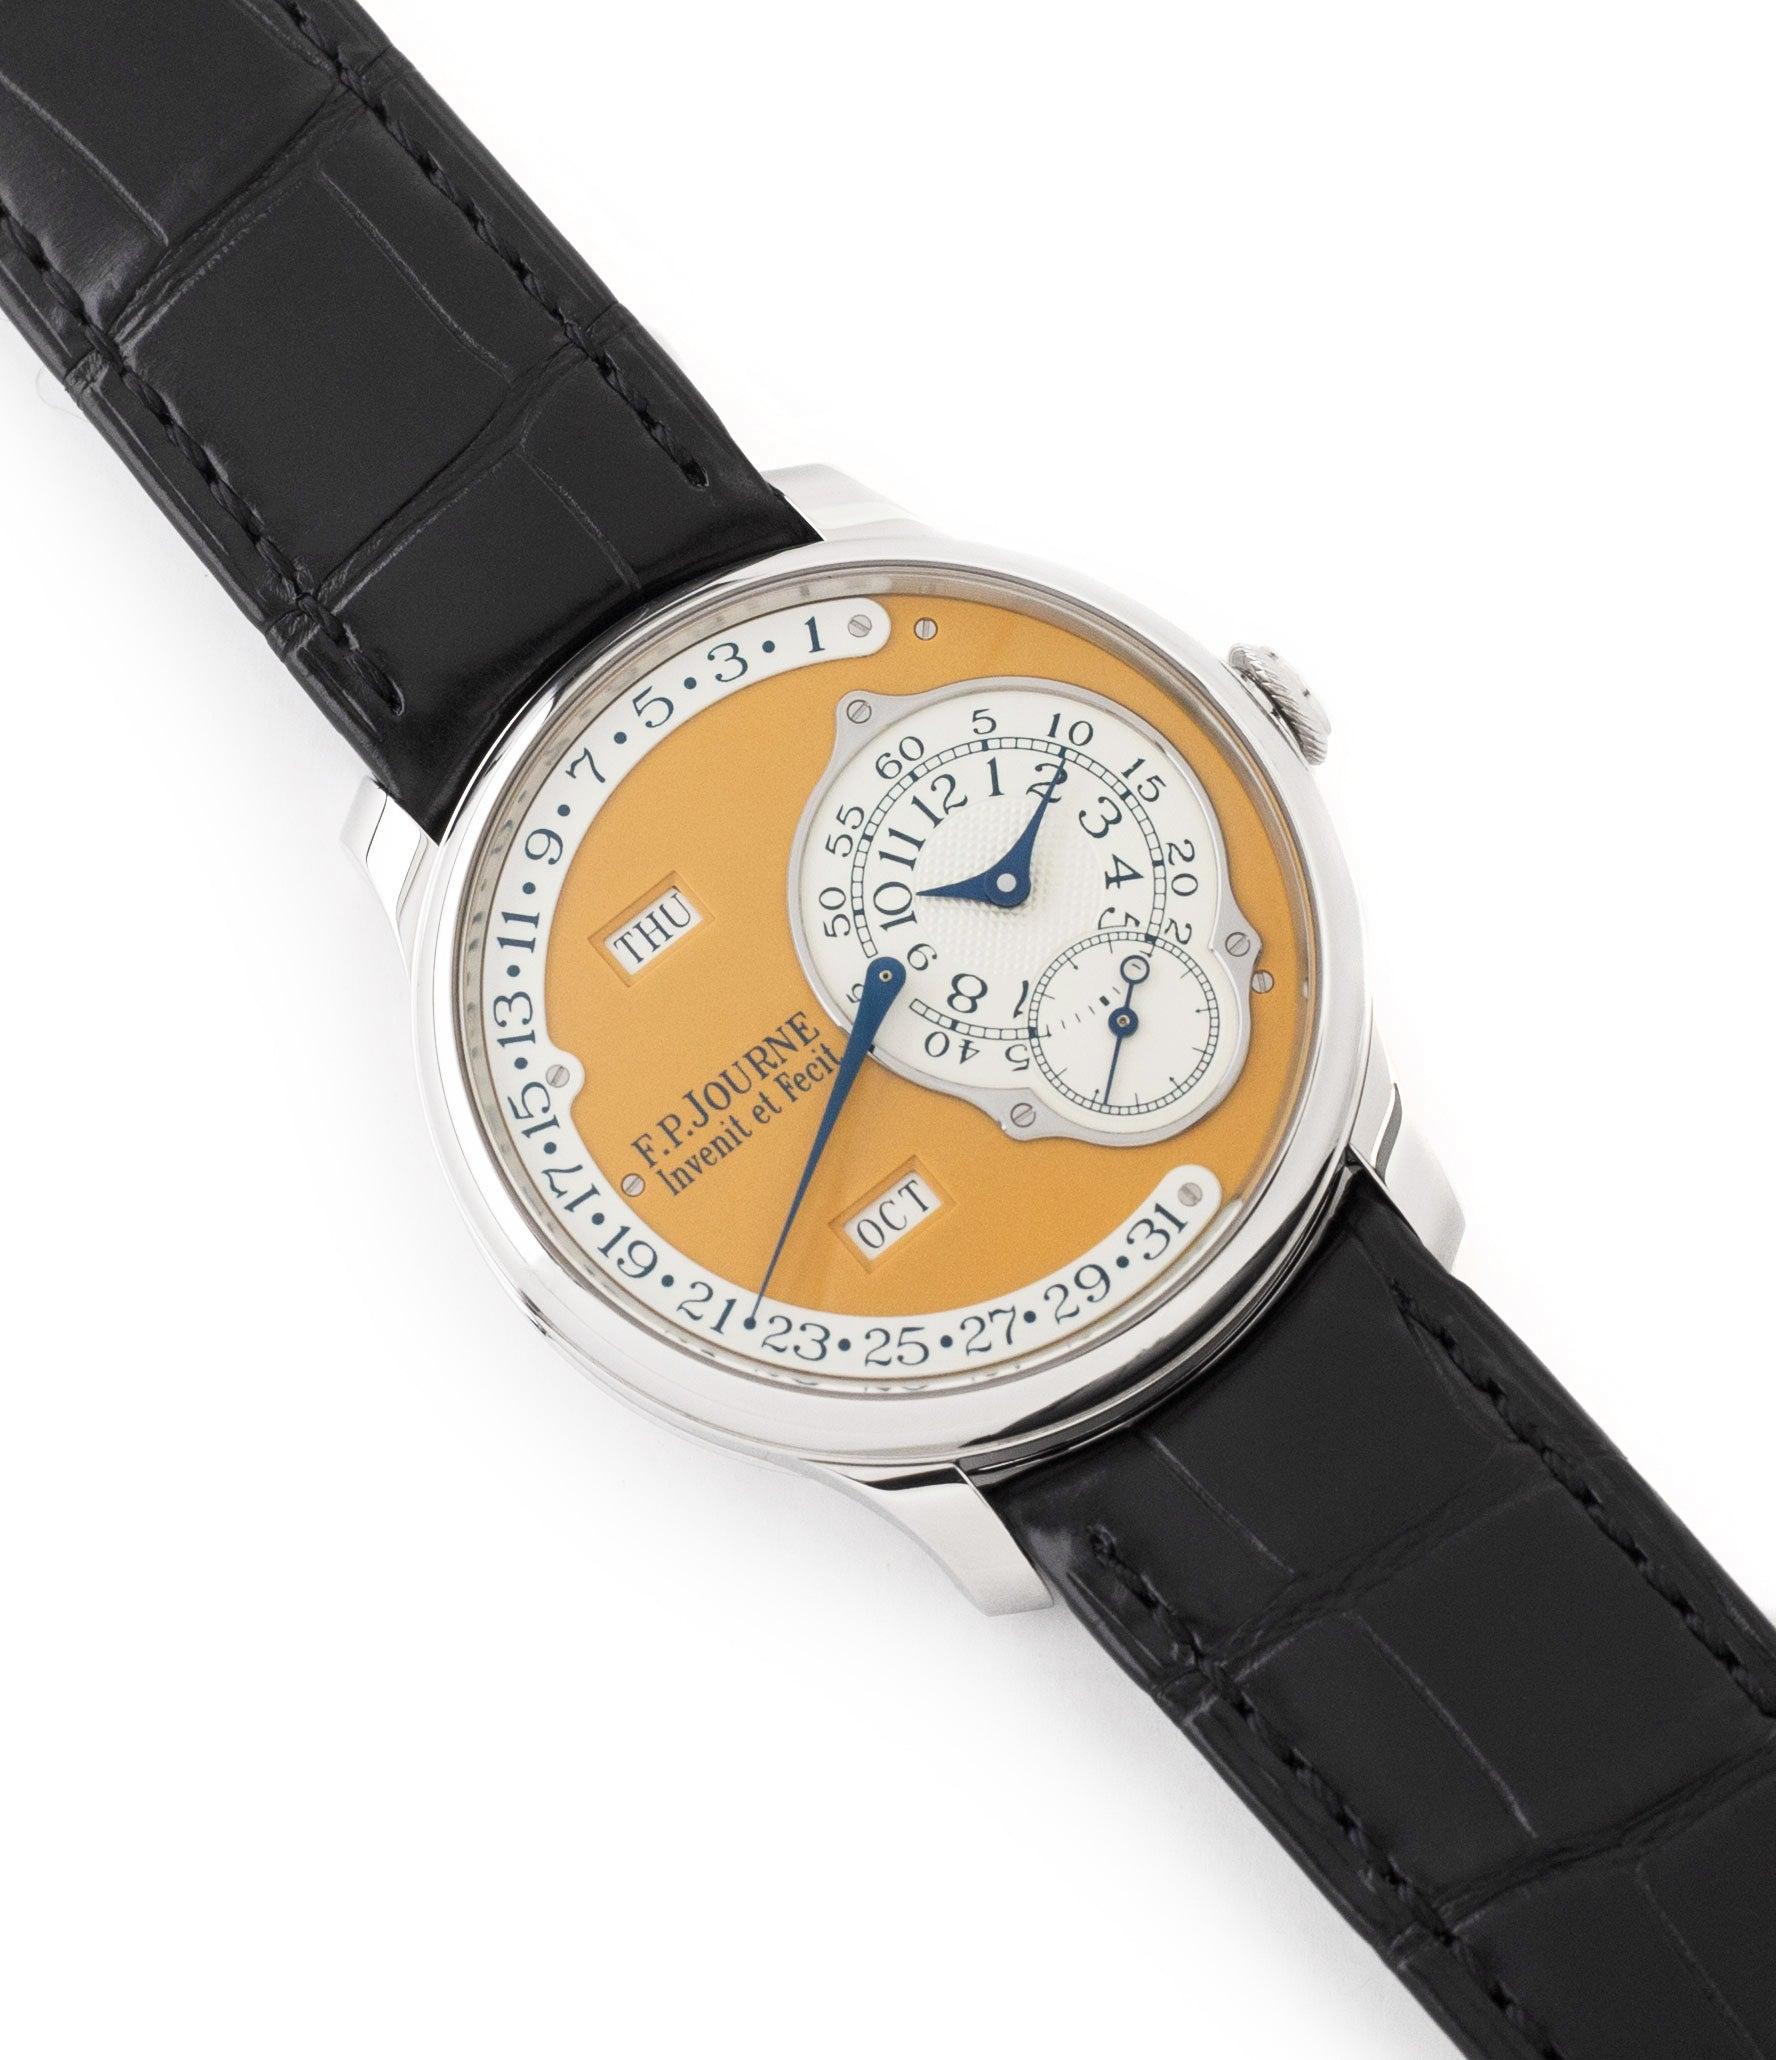 buy prowned F. P. Journe Octa Calendrier Steel 38 mm Limited Edition Set for sale online at A Collected Man London approved UK seller of independent watchmakers